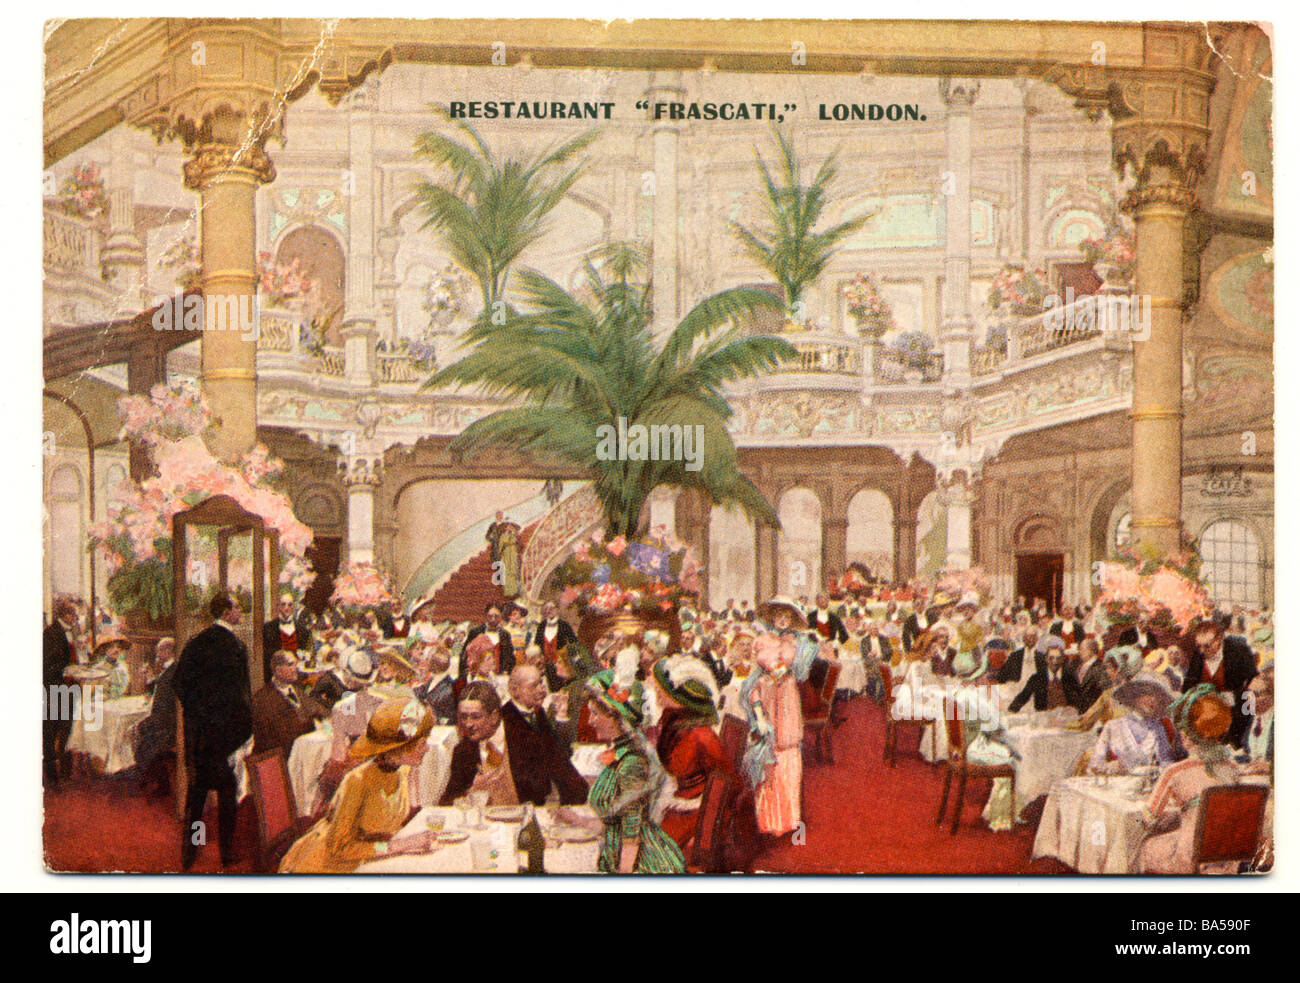 Old hand painted Victorian postcard of Restaurant Frascati in London in 1895 - Stock Image